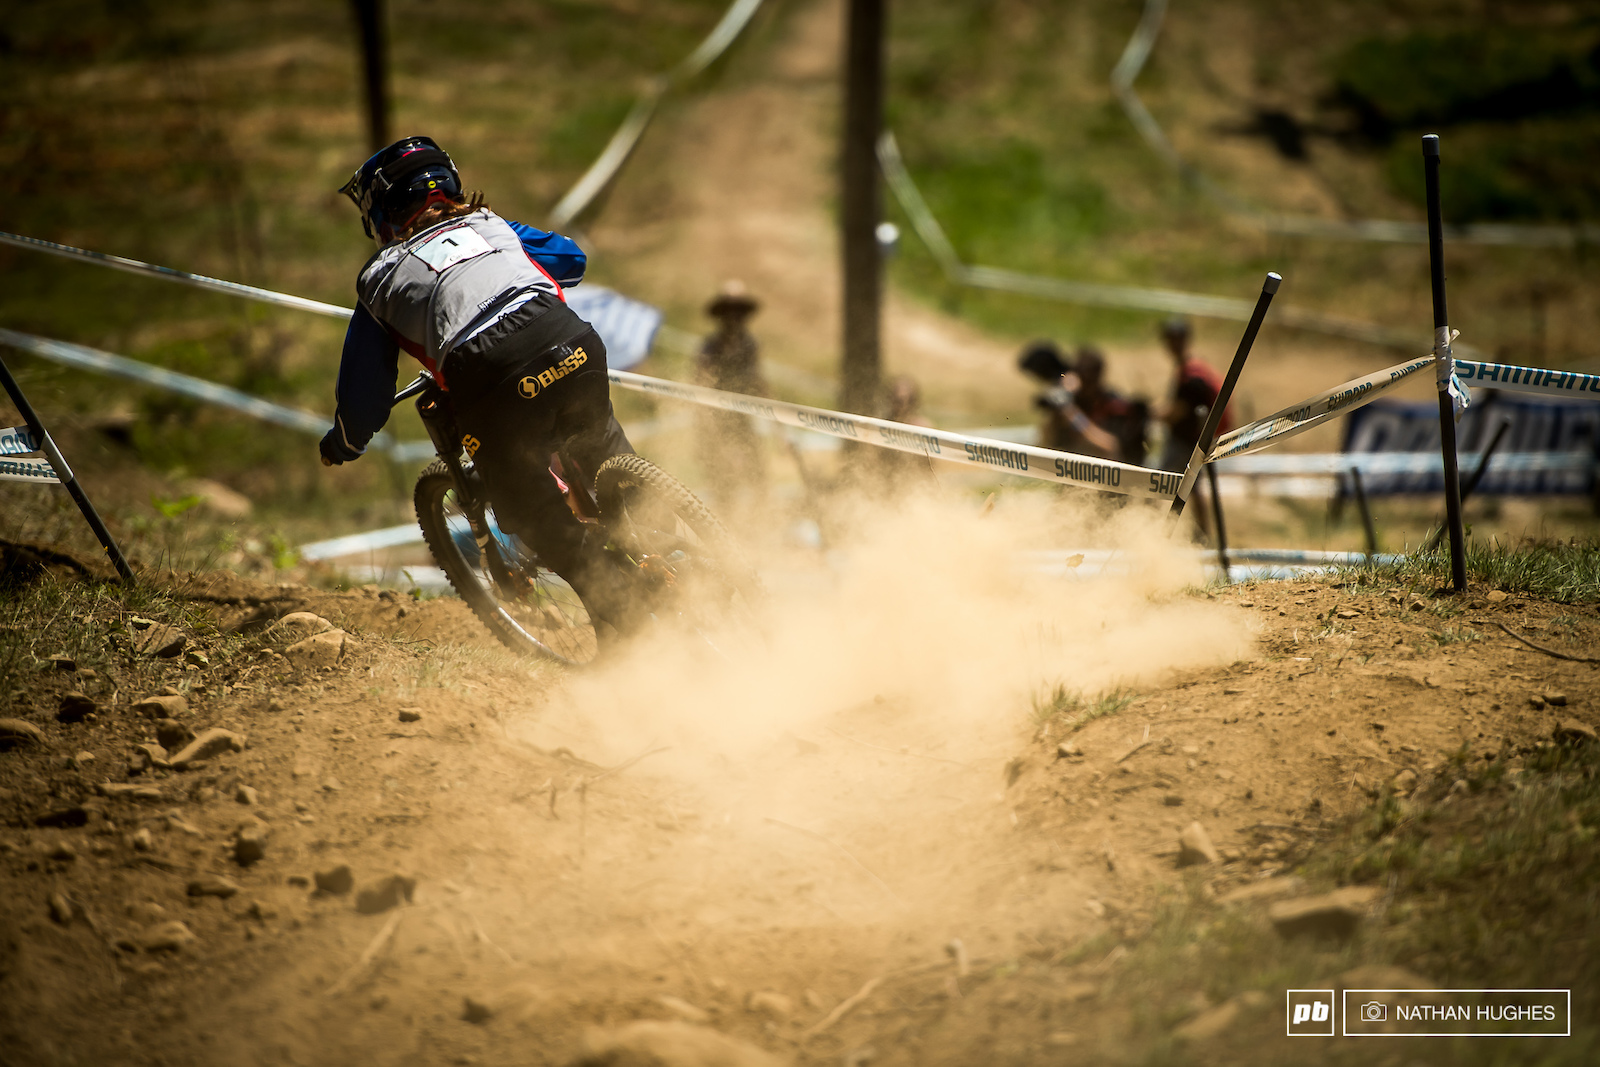 Melanie Chappaz leaving the rest of the junior women s field in her dust this afternoon 8 seconds up.